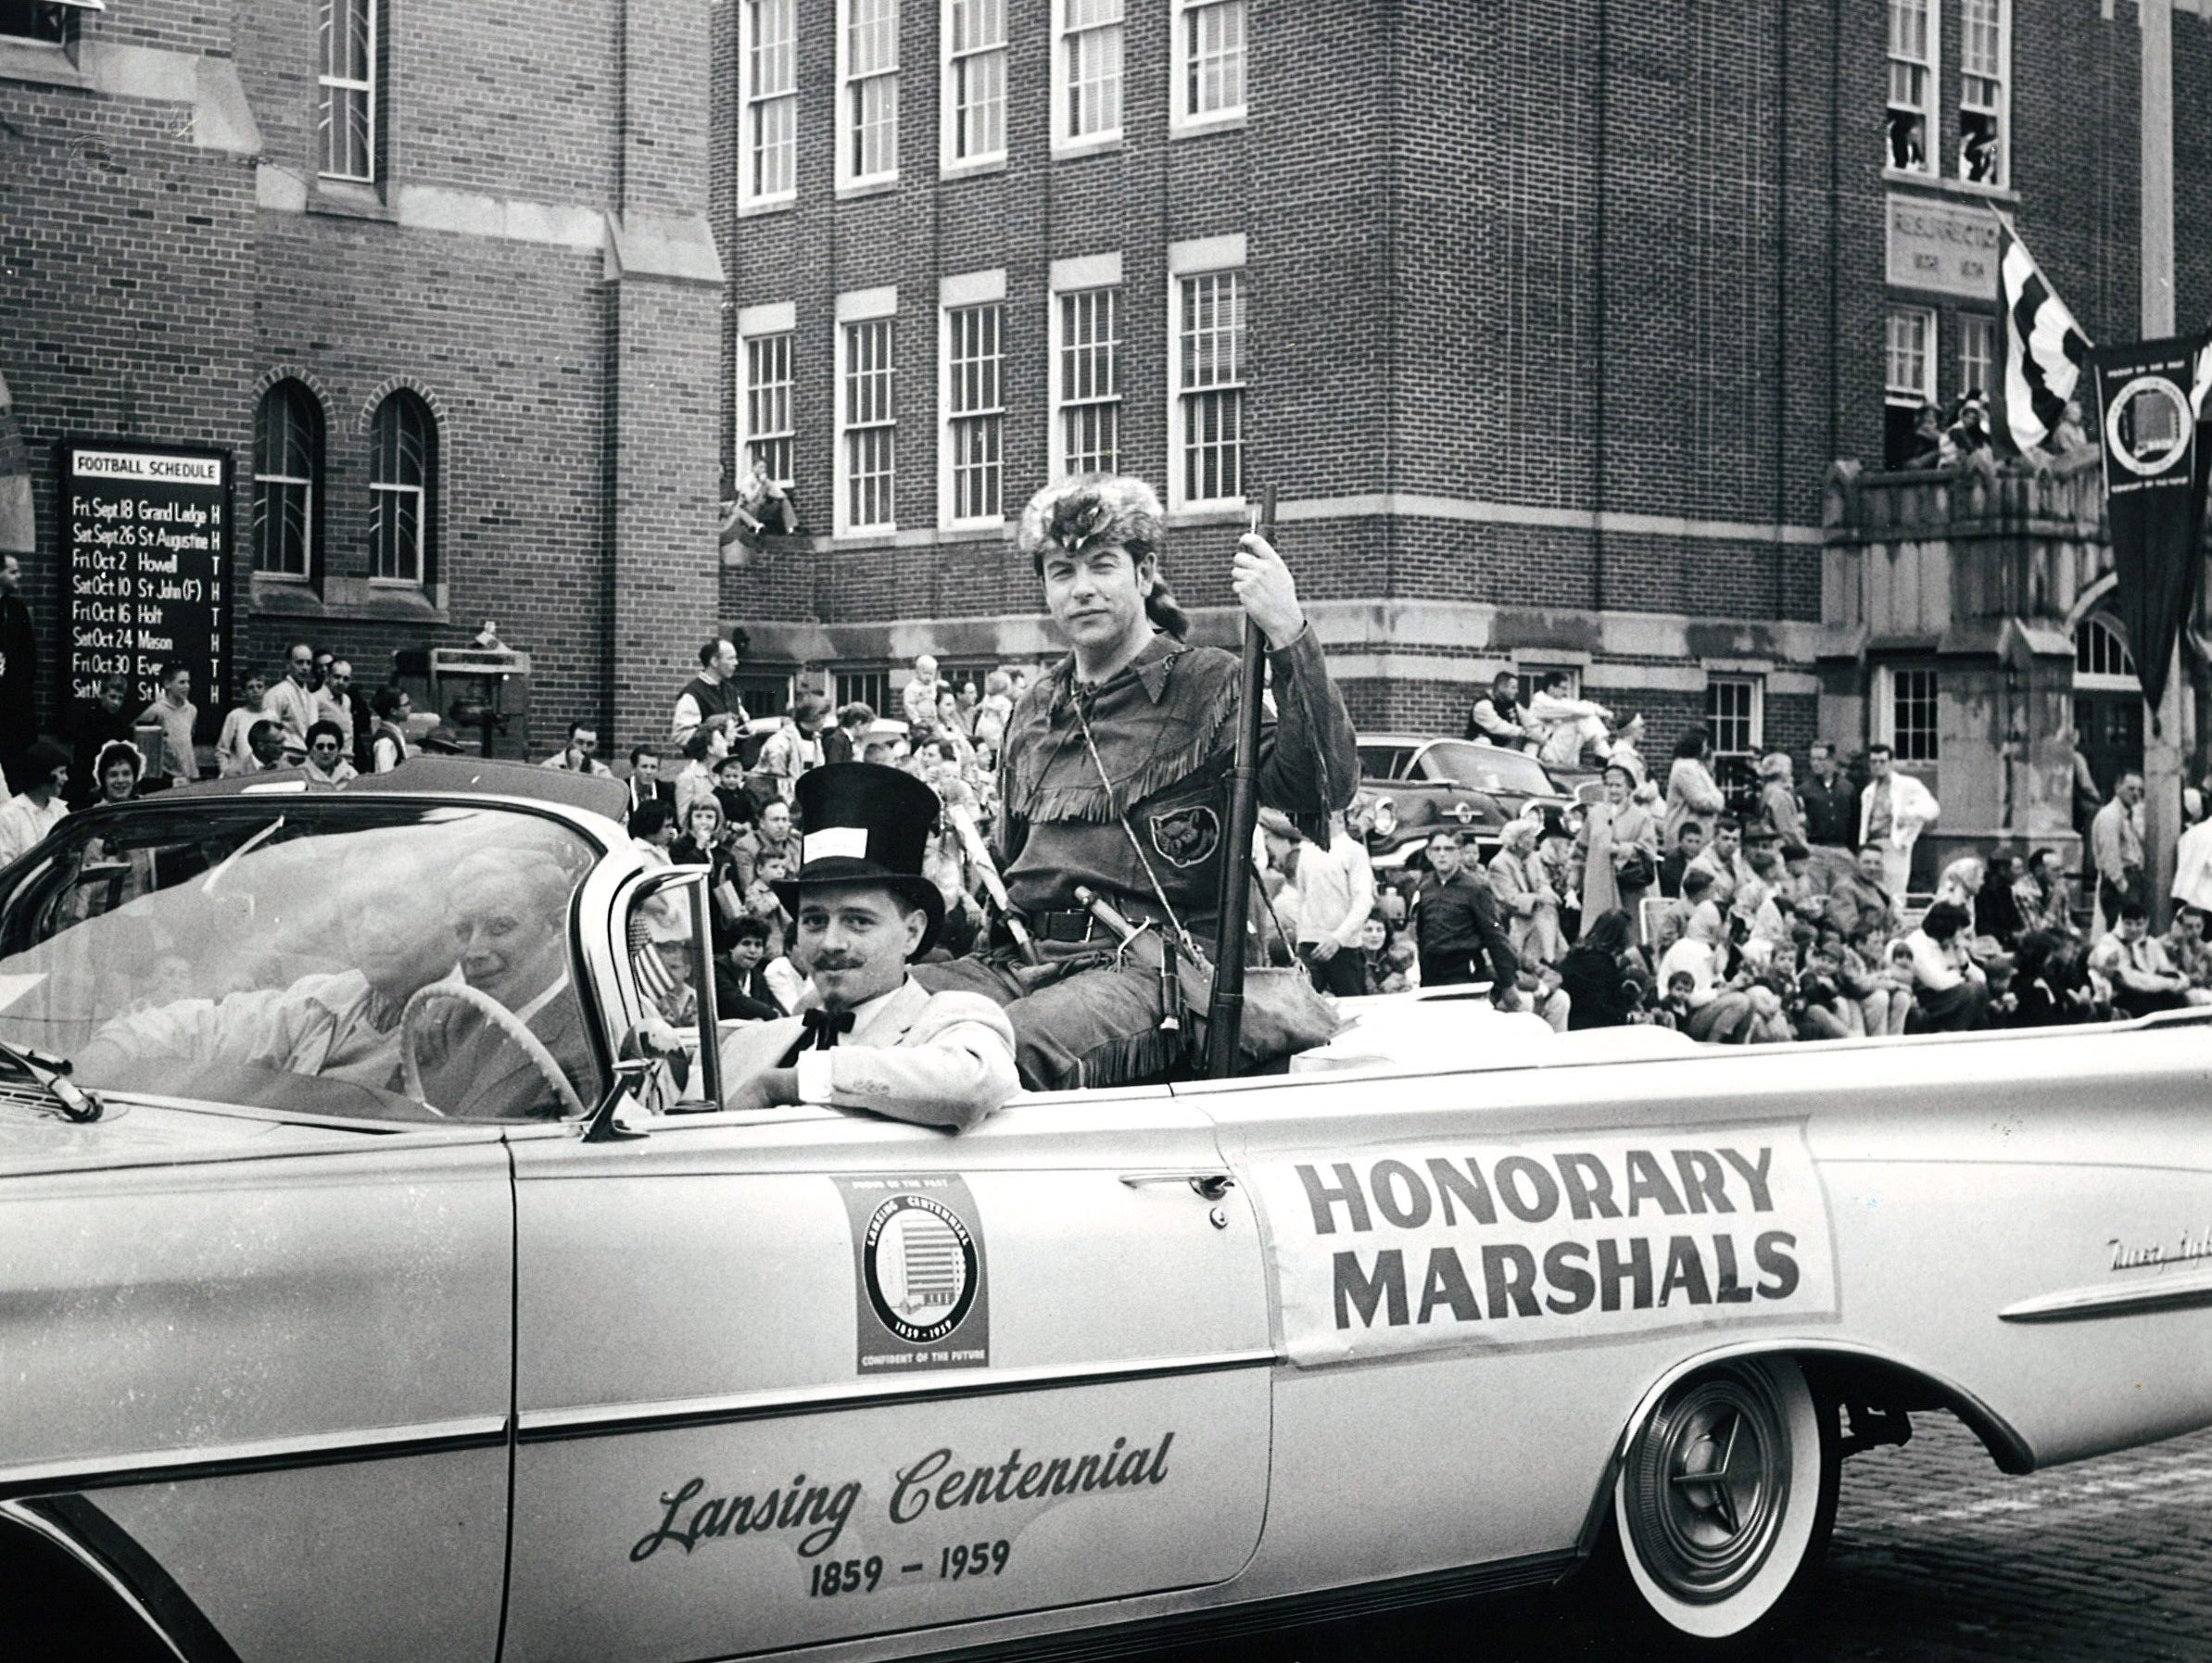 1959 : Lansing's Centennial / History of Transportation Parade